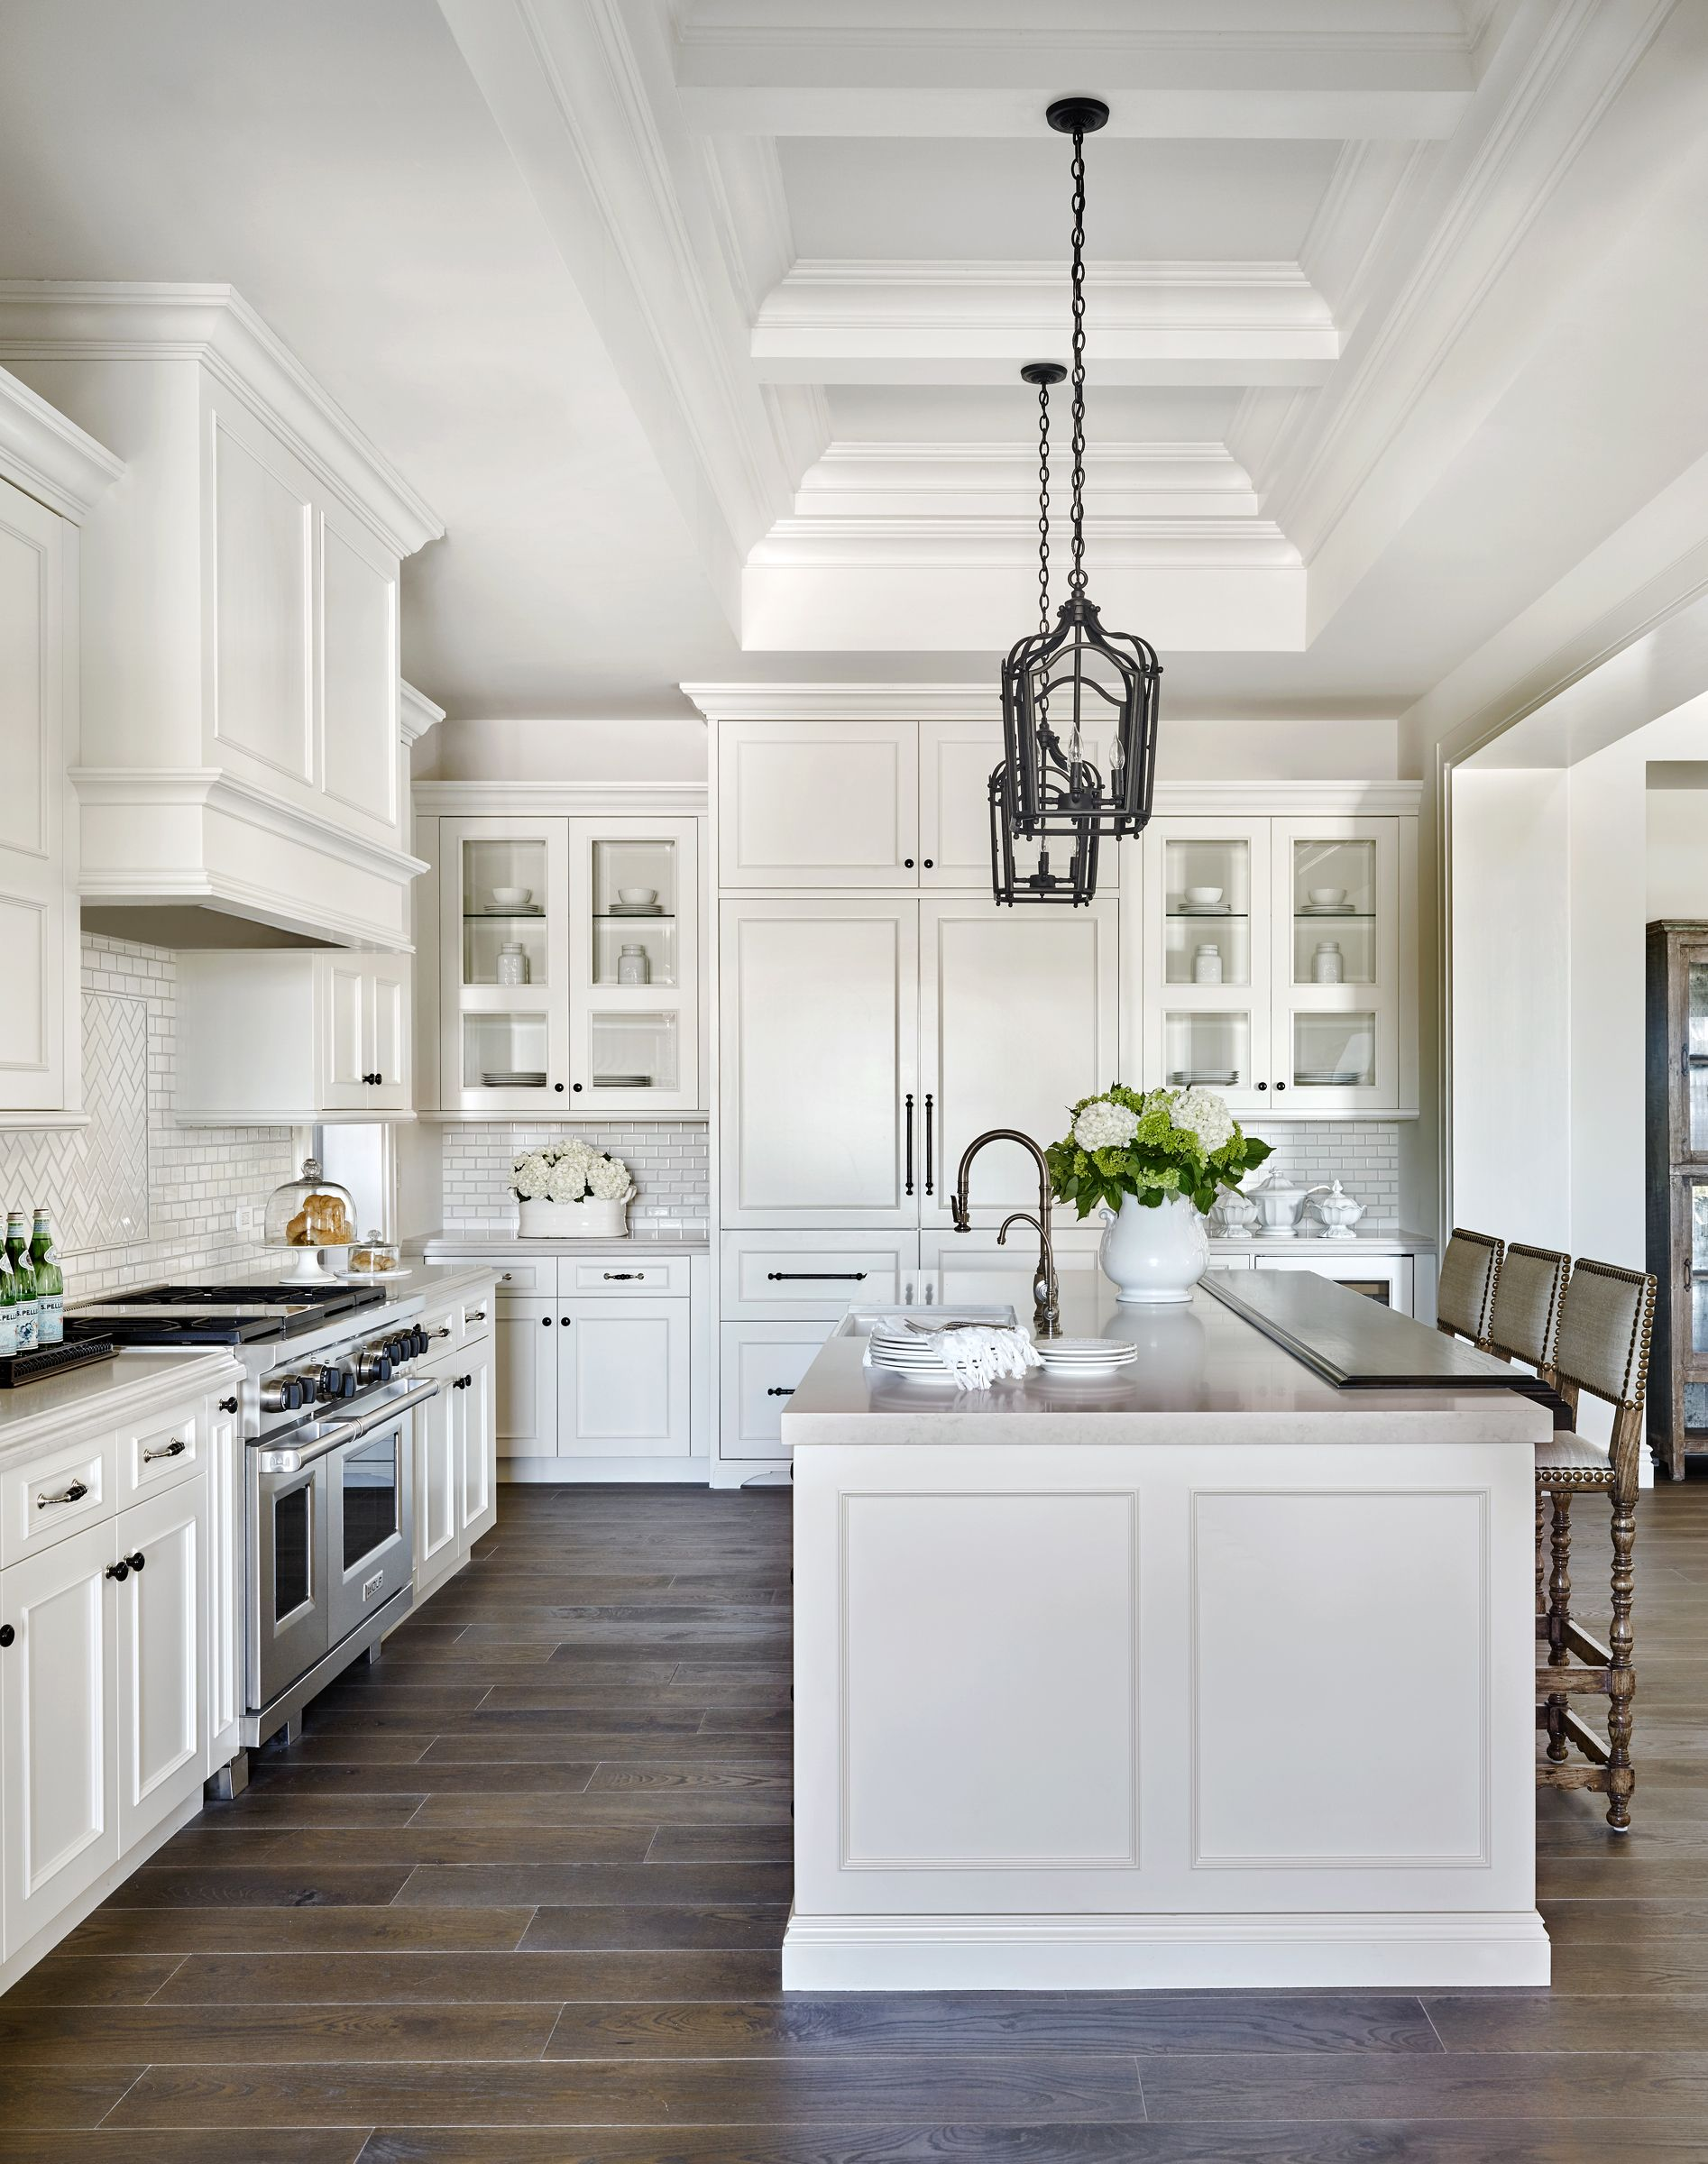 White Raised Panel Kitchen Cabinets With Mini Subway Tile Backsplash Kitchens